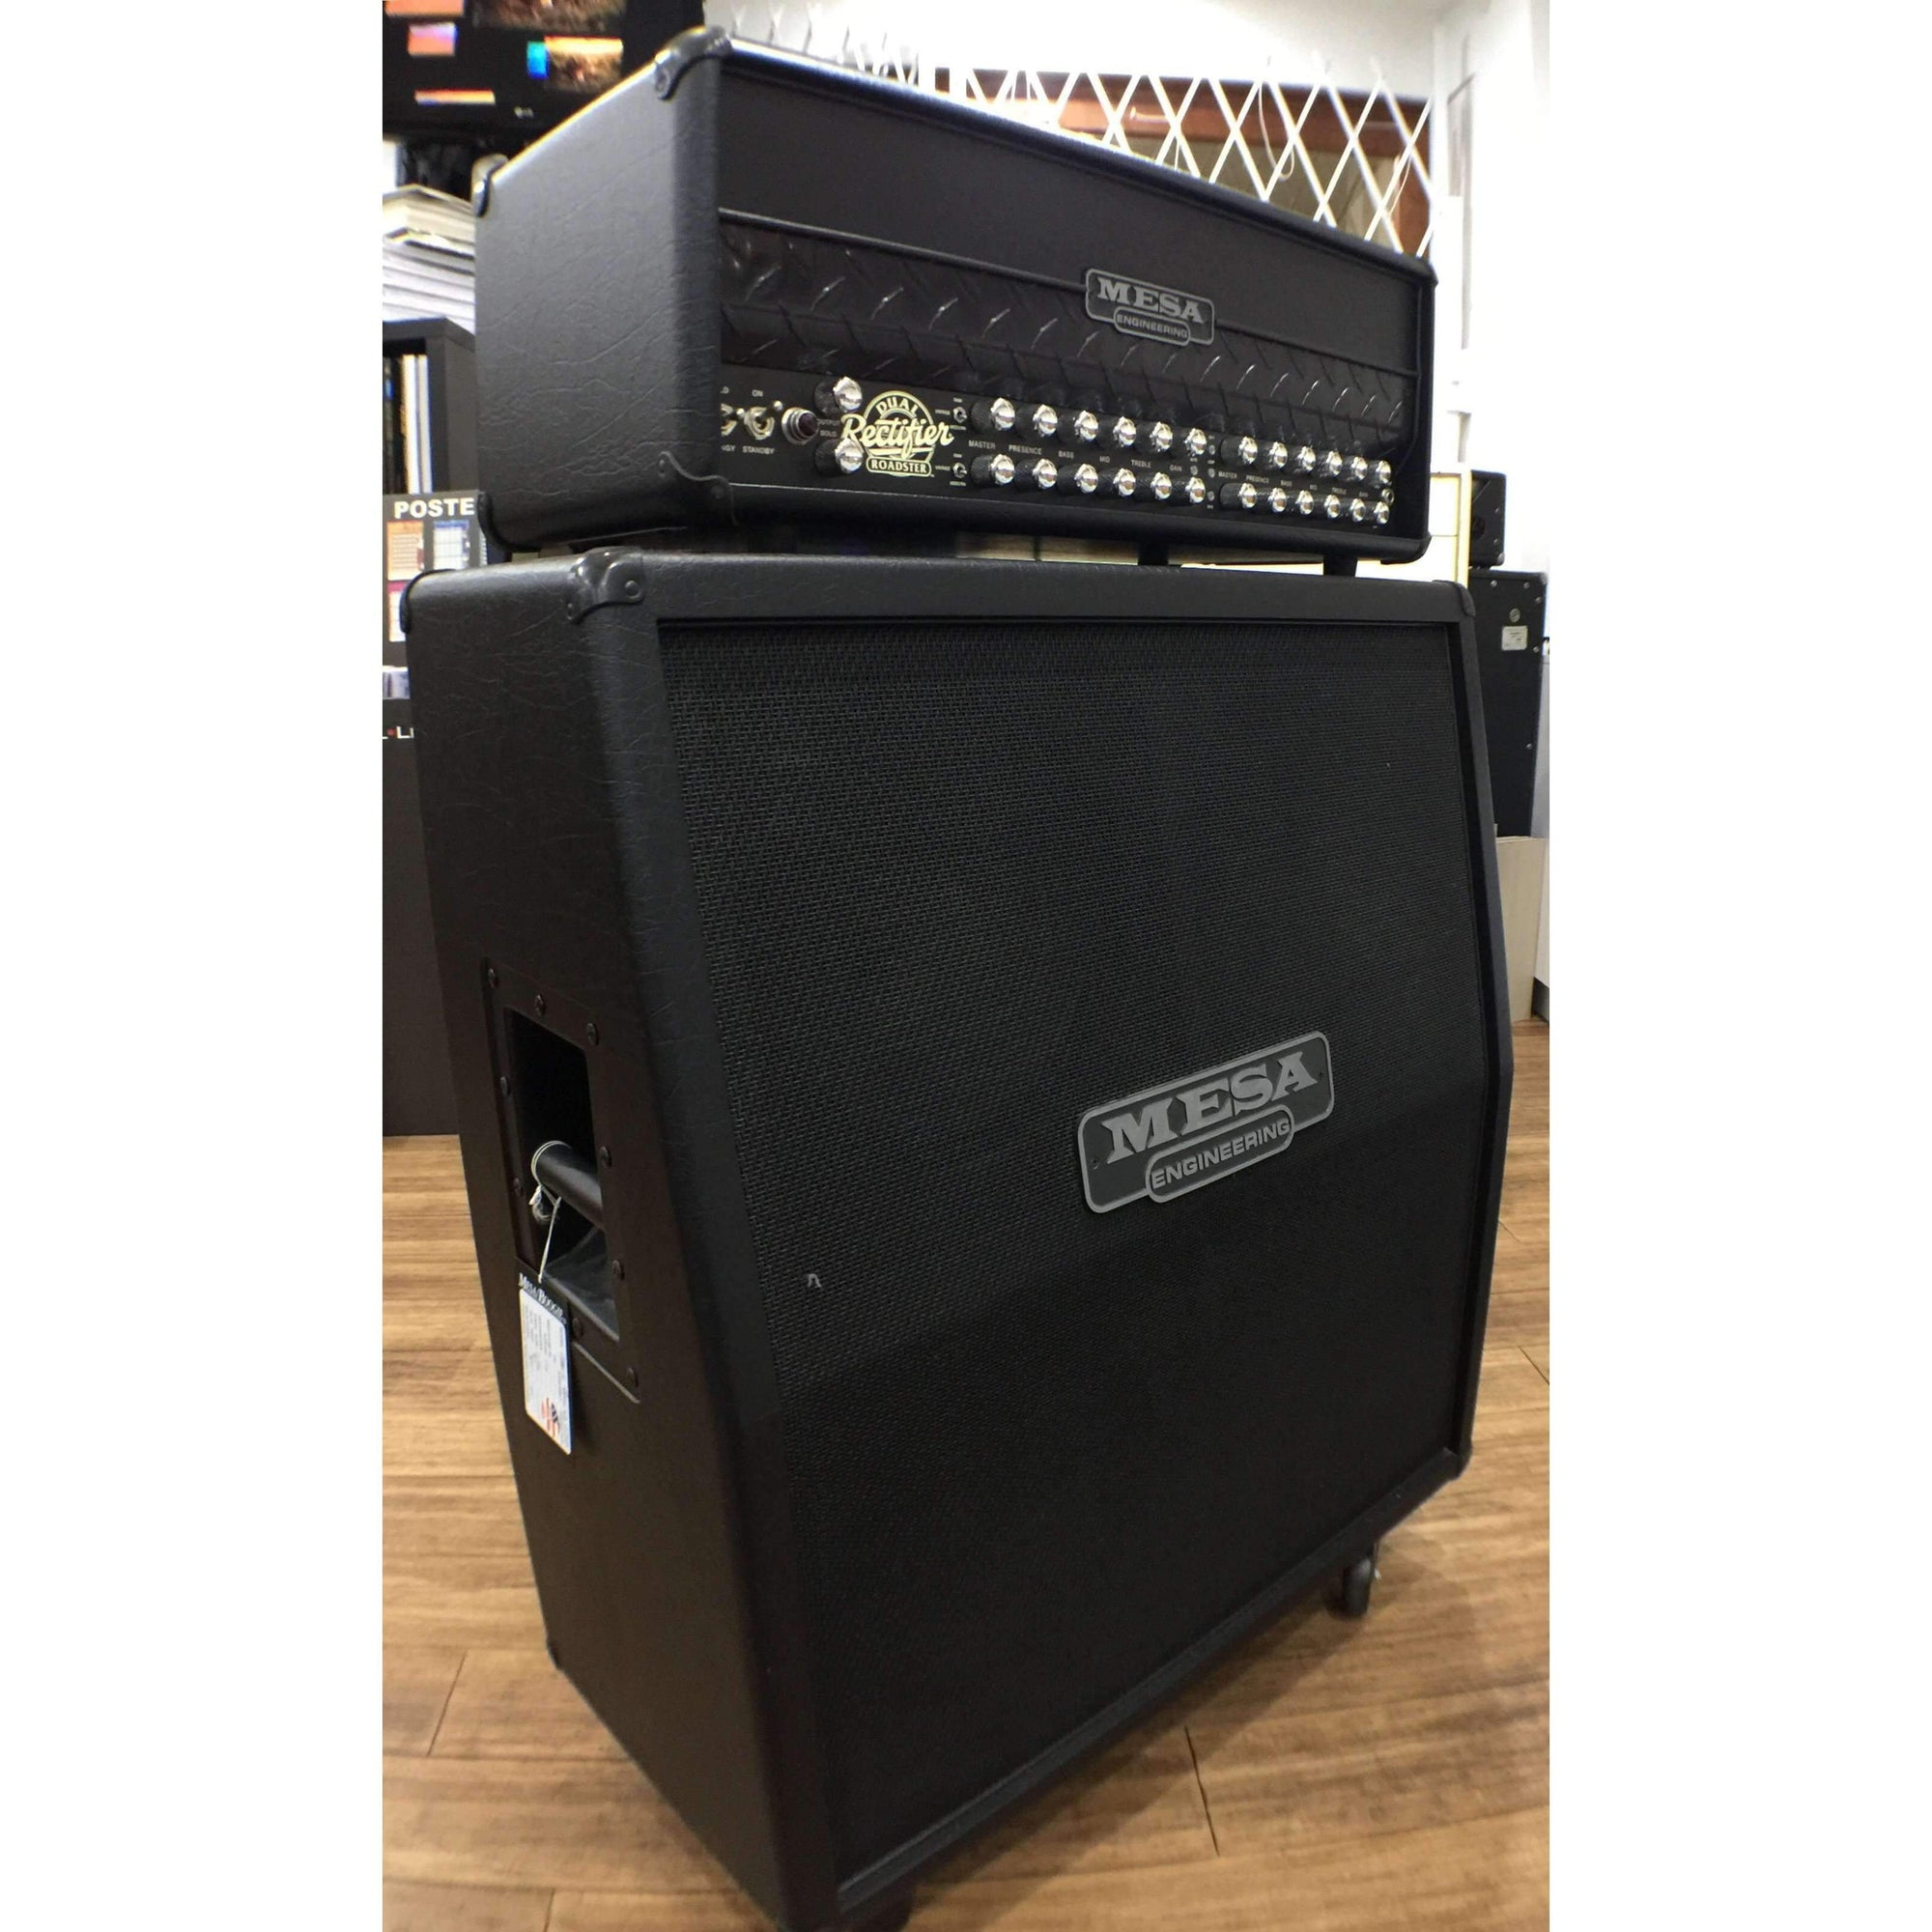 Industrie Music,Mesa Boogie Dual Rectifier Roadster 100Watt Head & 4x12 Slant Cab